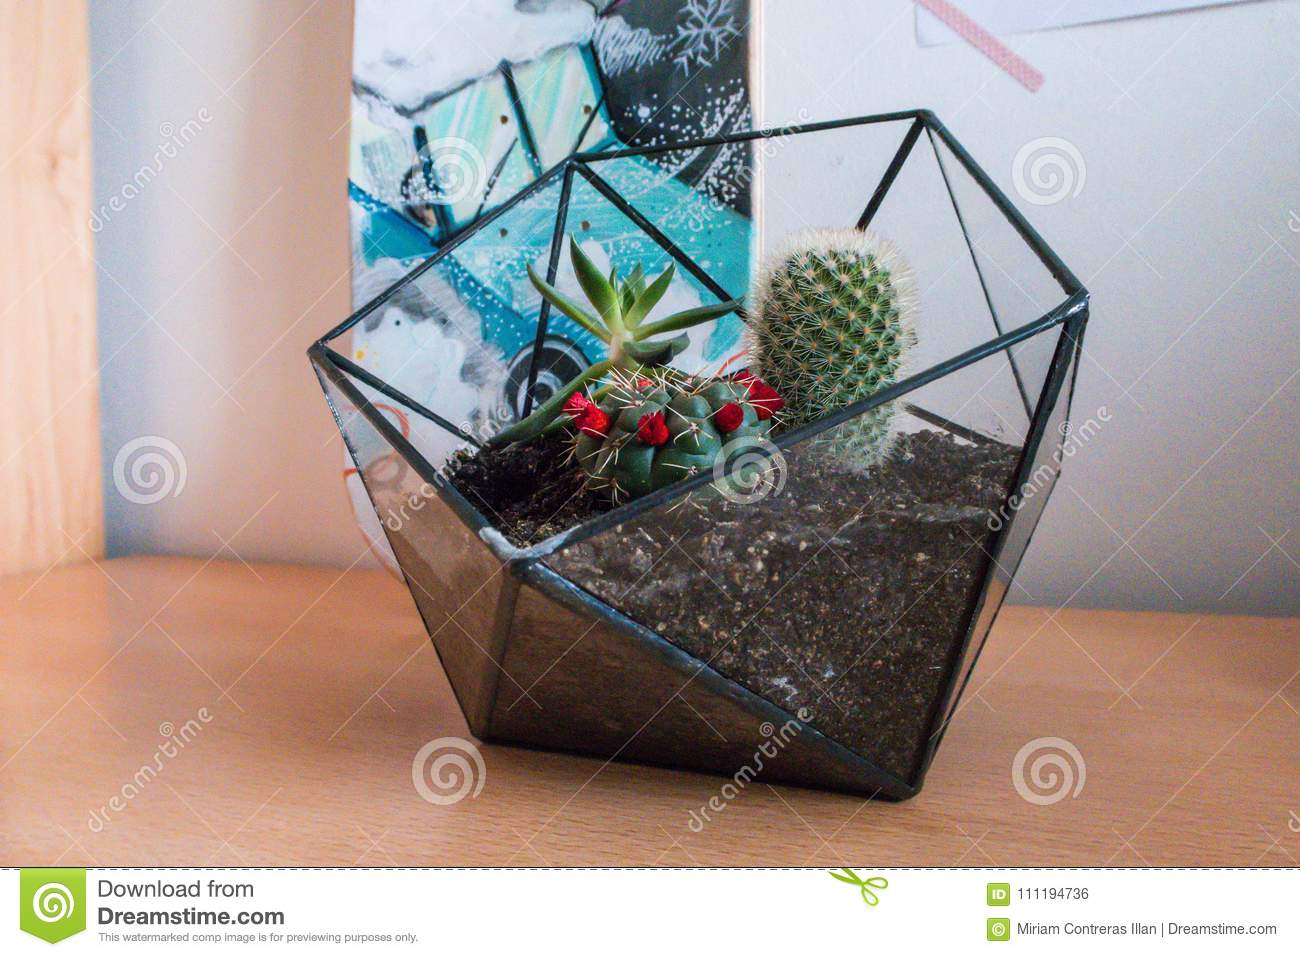 Photograph Of Terrarium With Cactus And Succulents Stock Photo